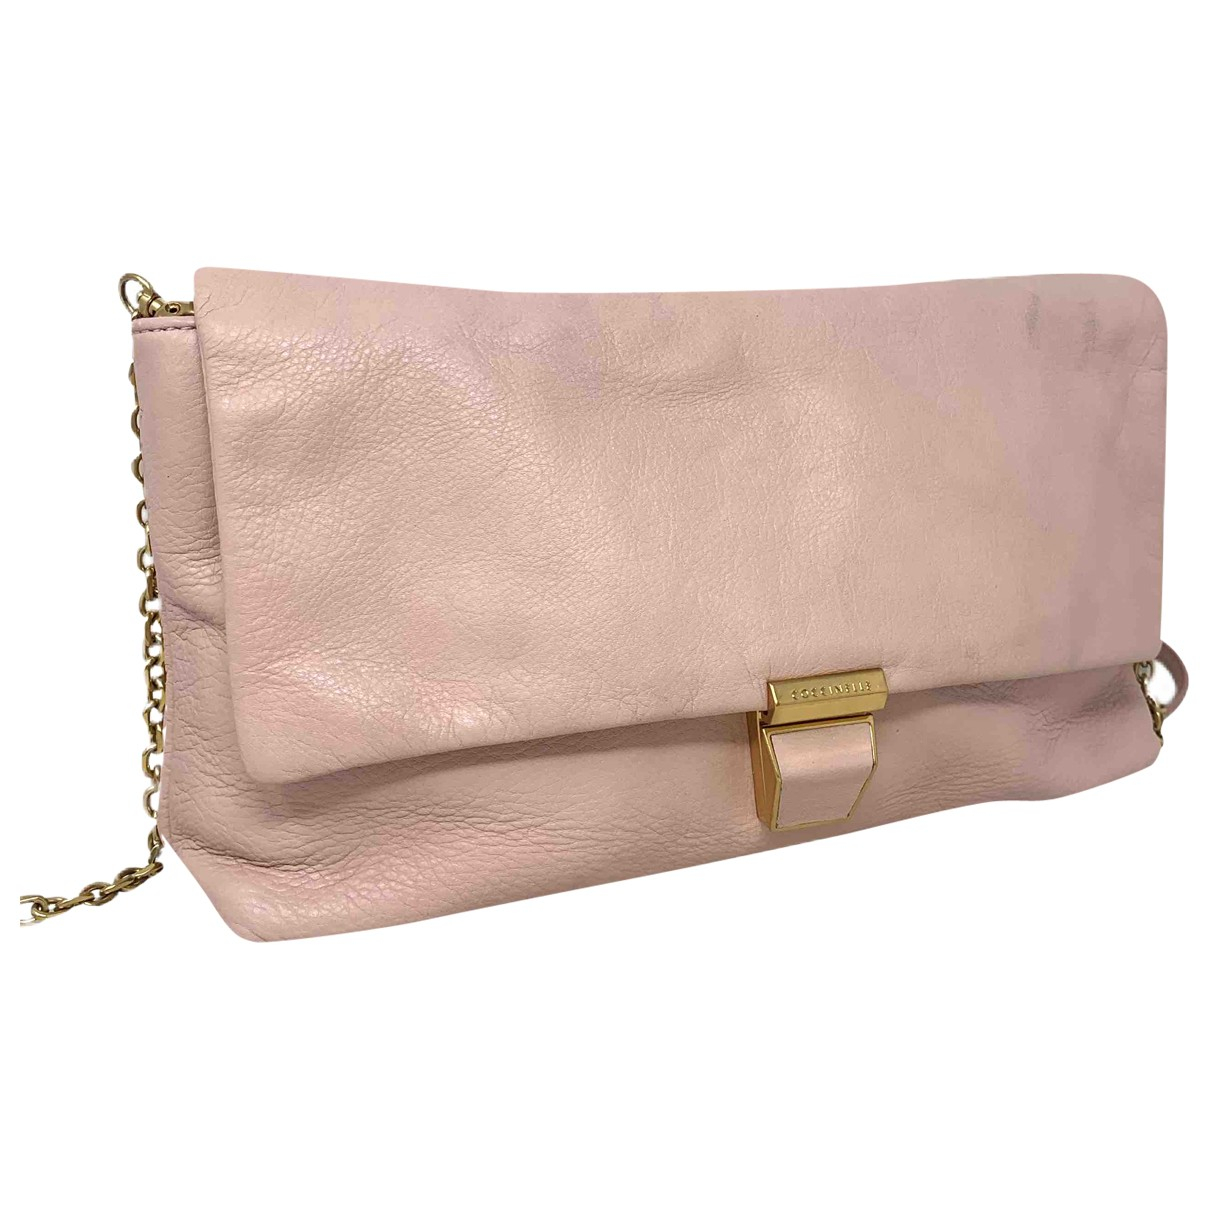 Coccinelle \N Pink Leather handbag for Women \N